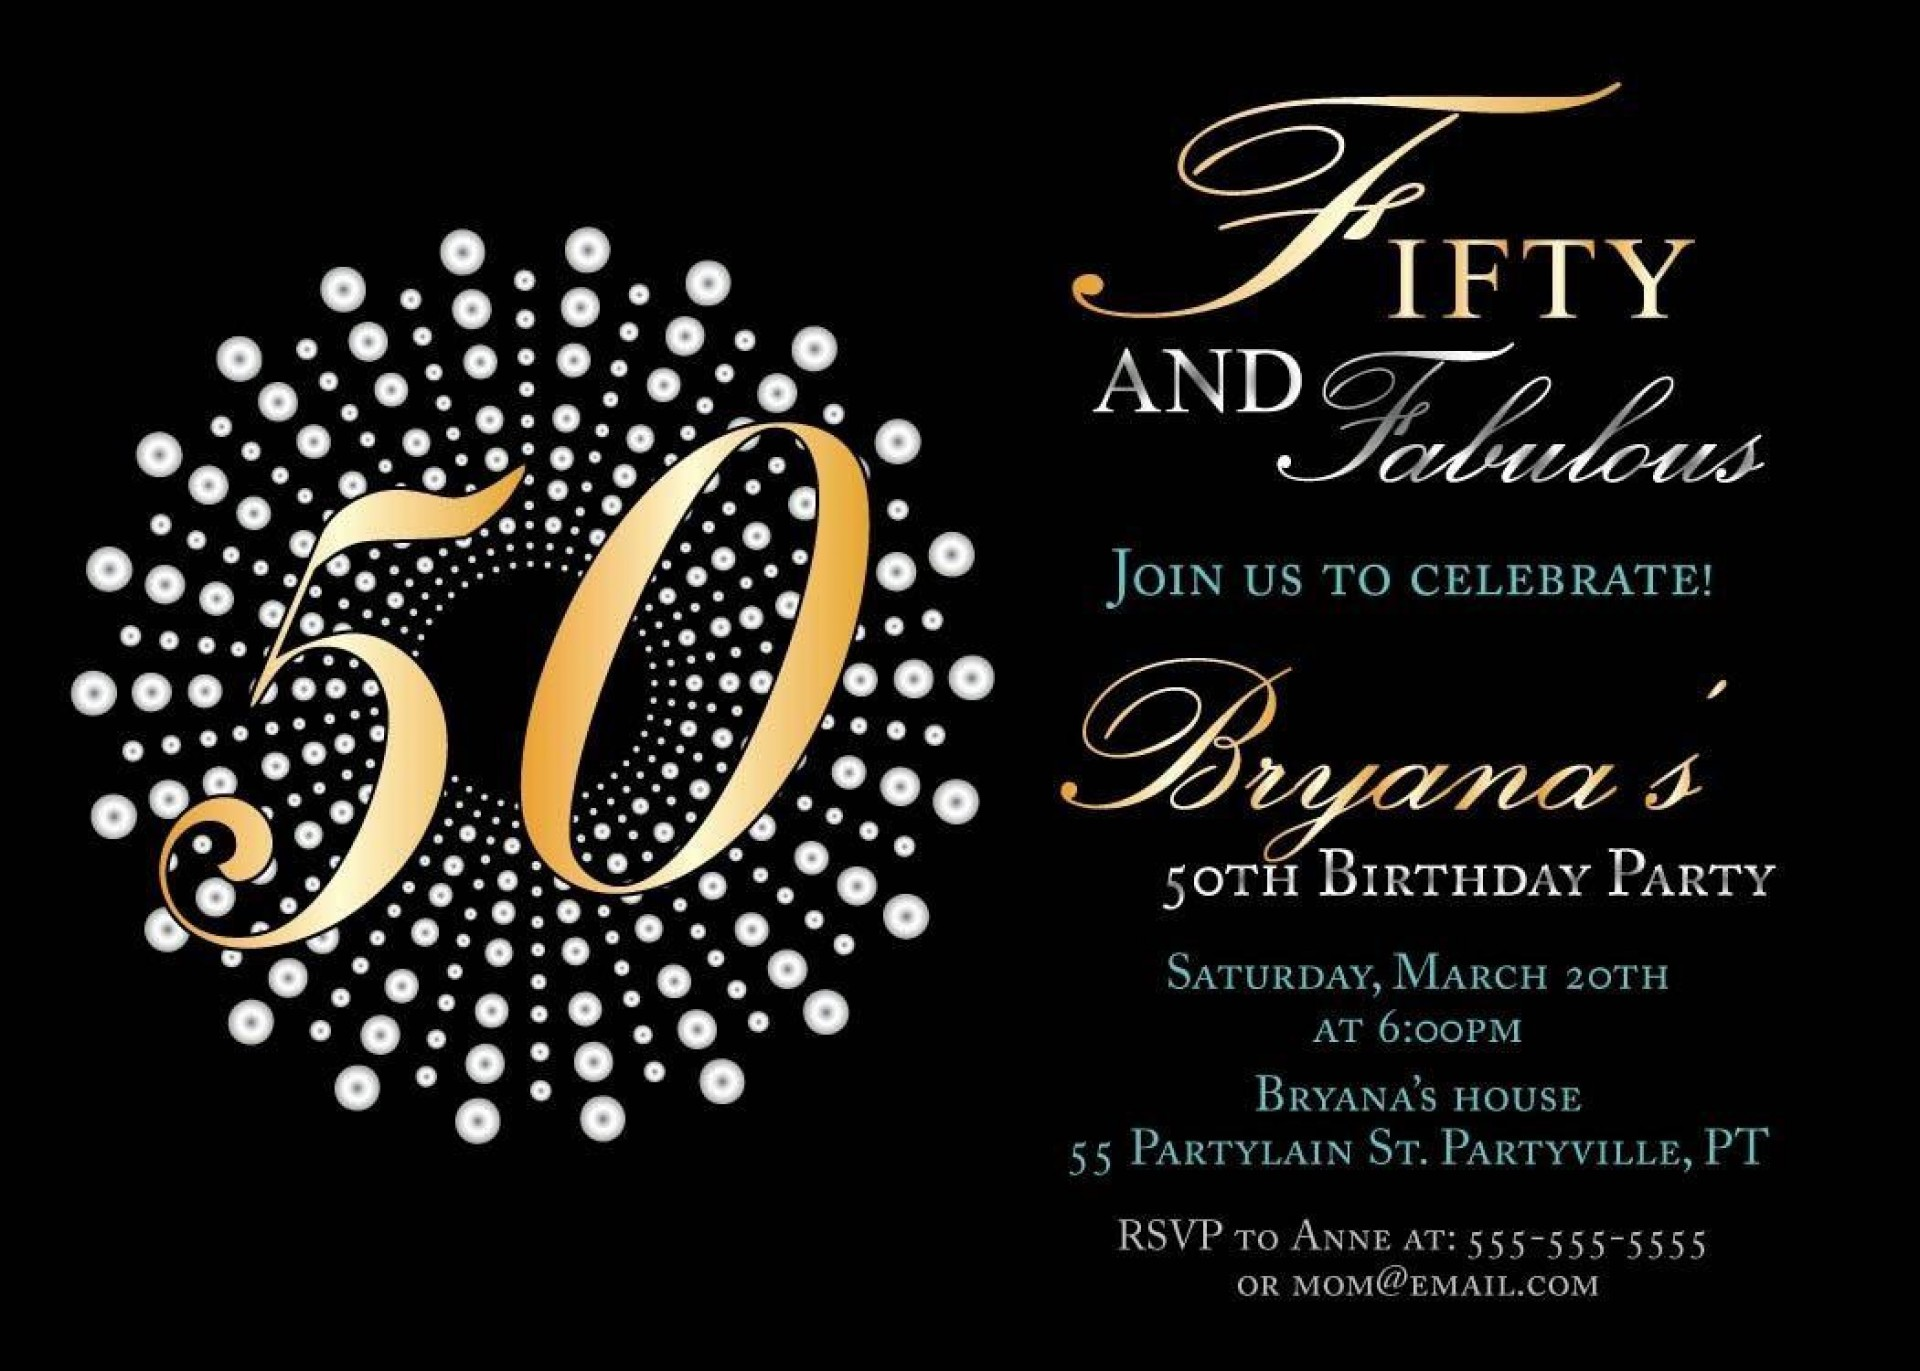 006 Amazing 50th Birthday Invitation Template Sample  Vector Free For Him1920